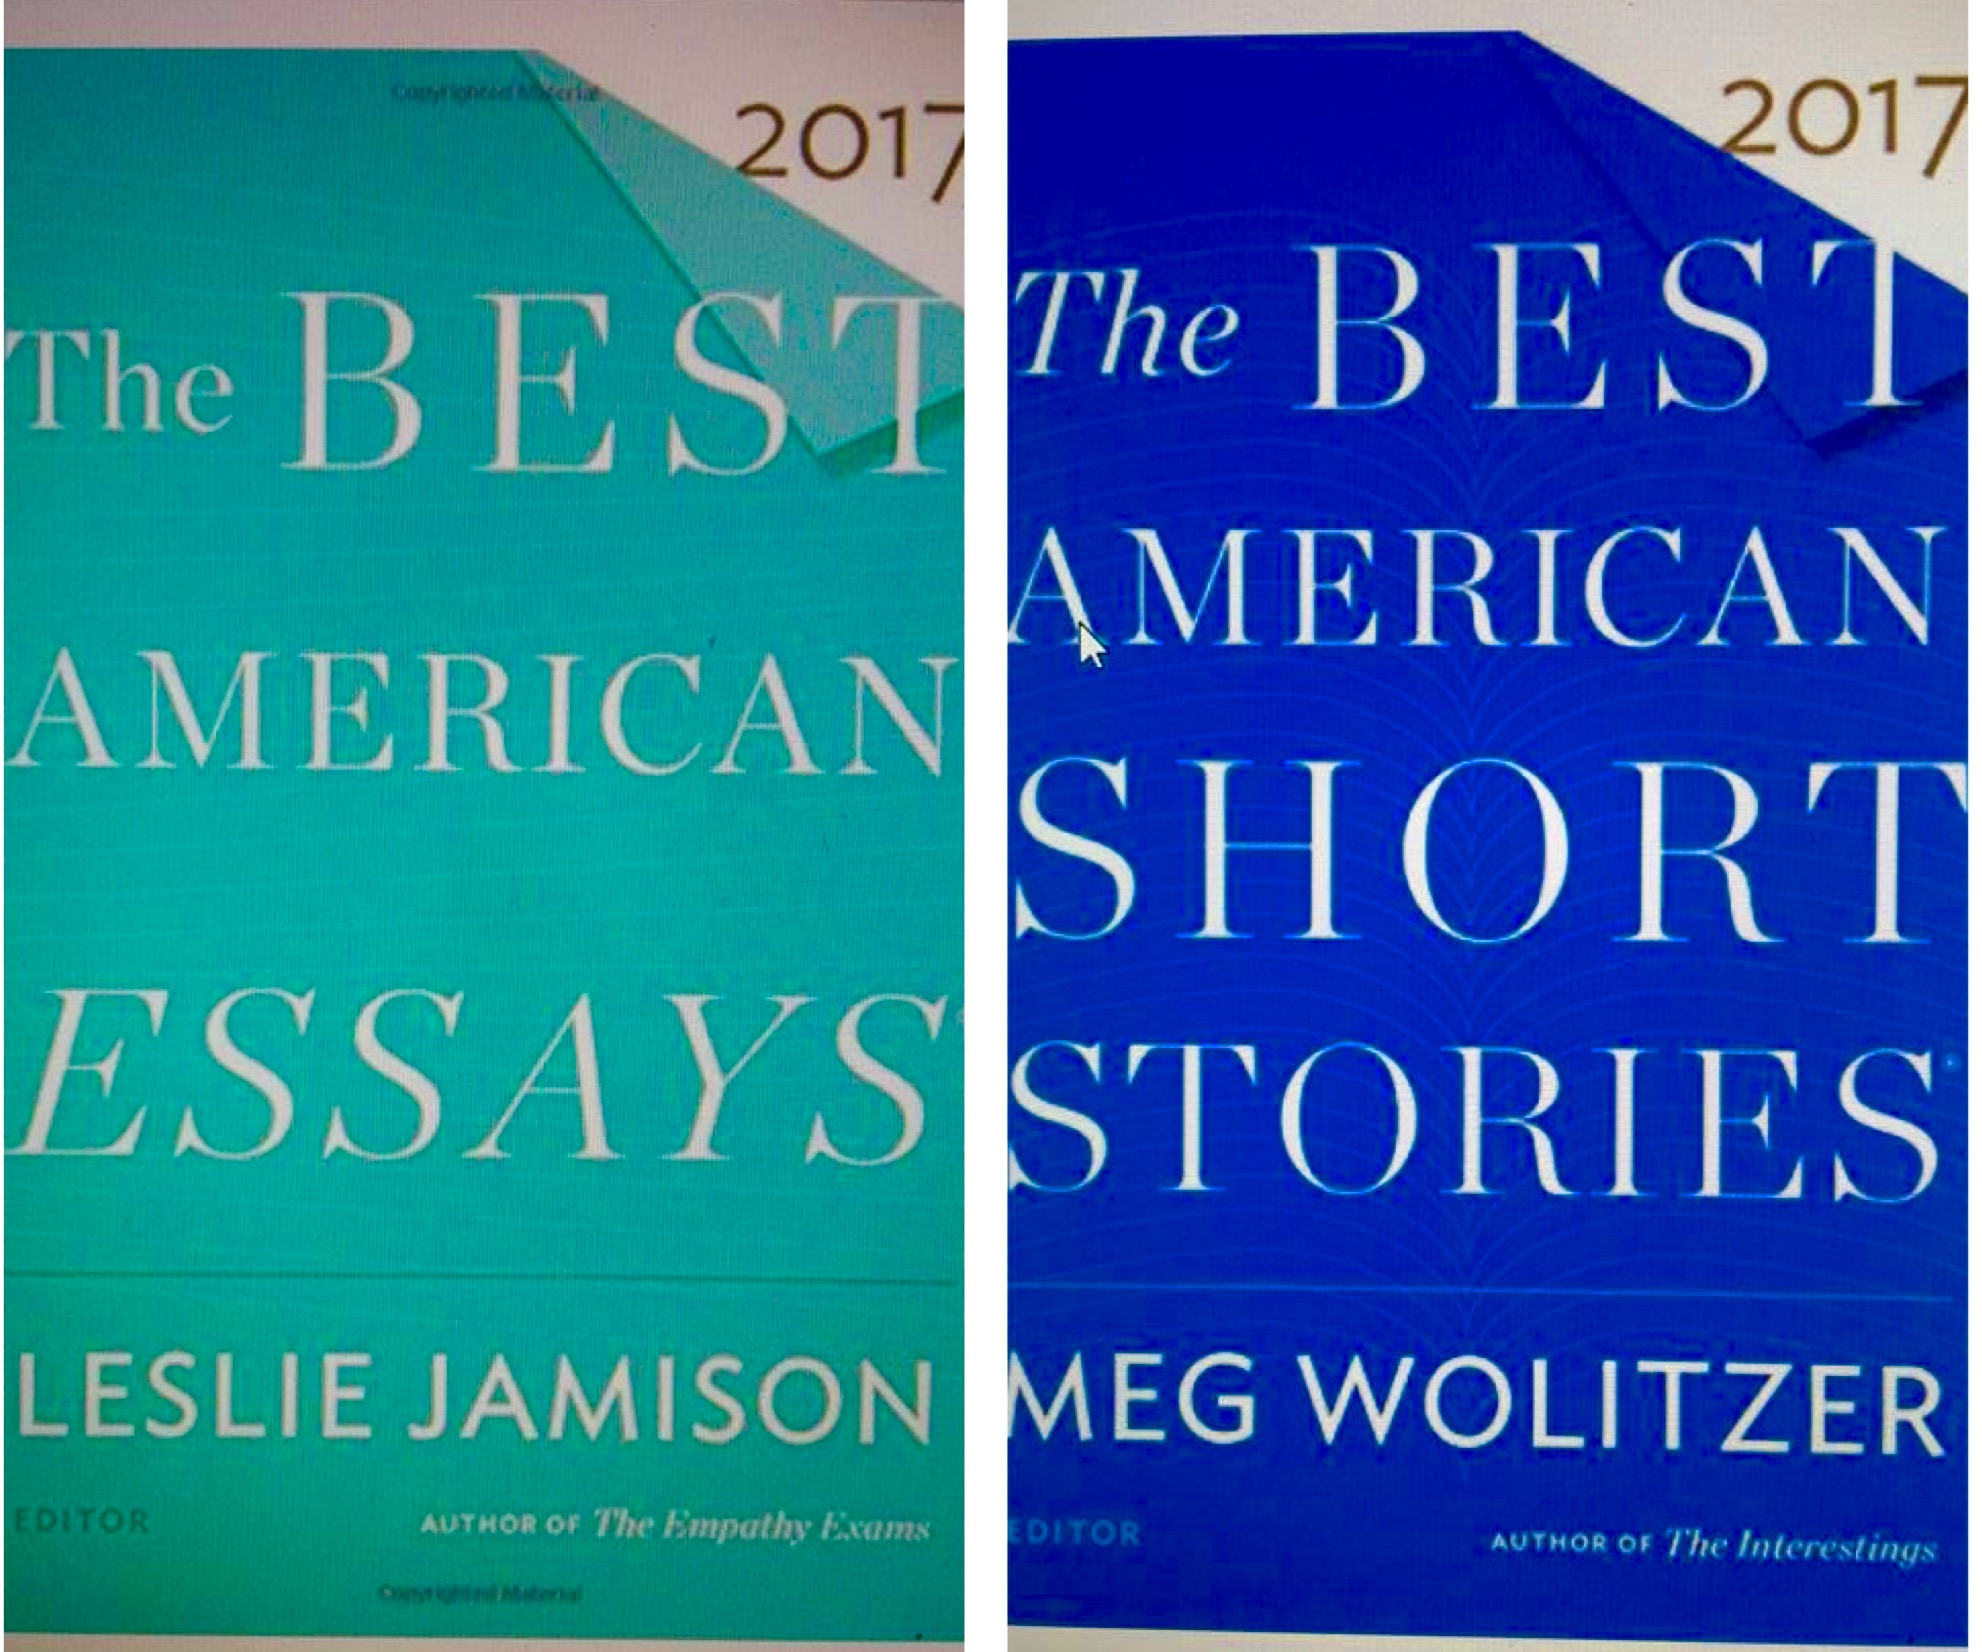 008 Essay Example Best American Essays Striking 2017 Table Of Contents The Century Pdf Full